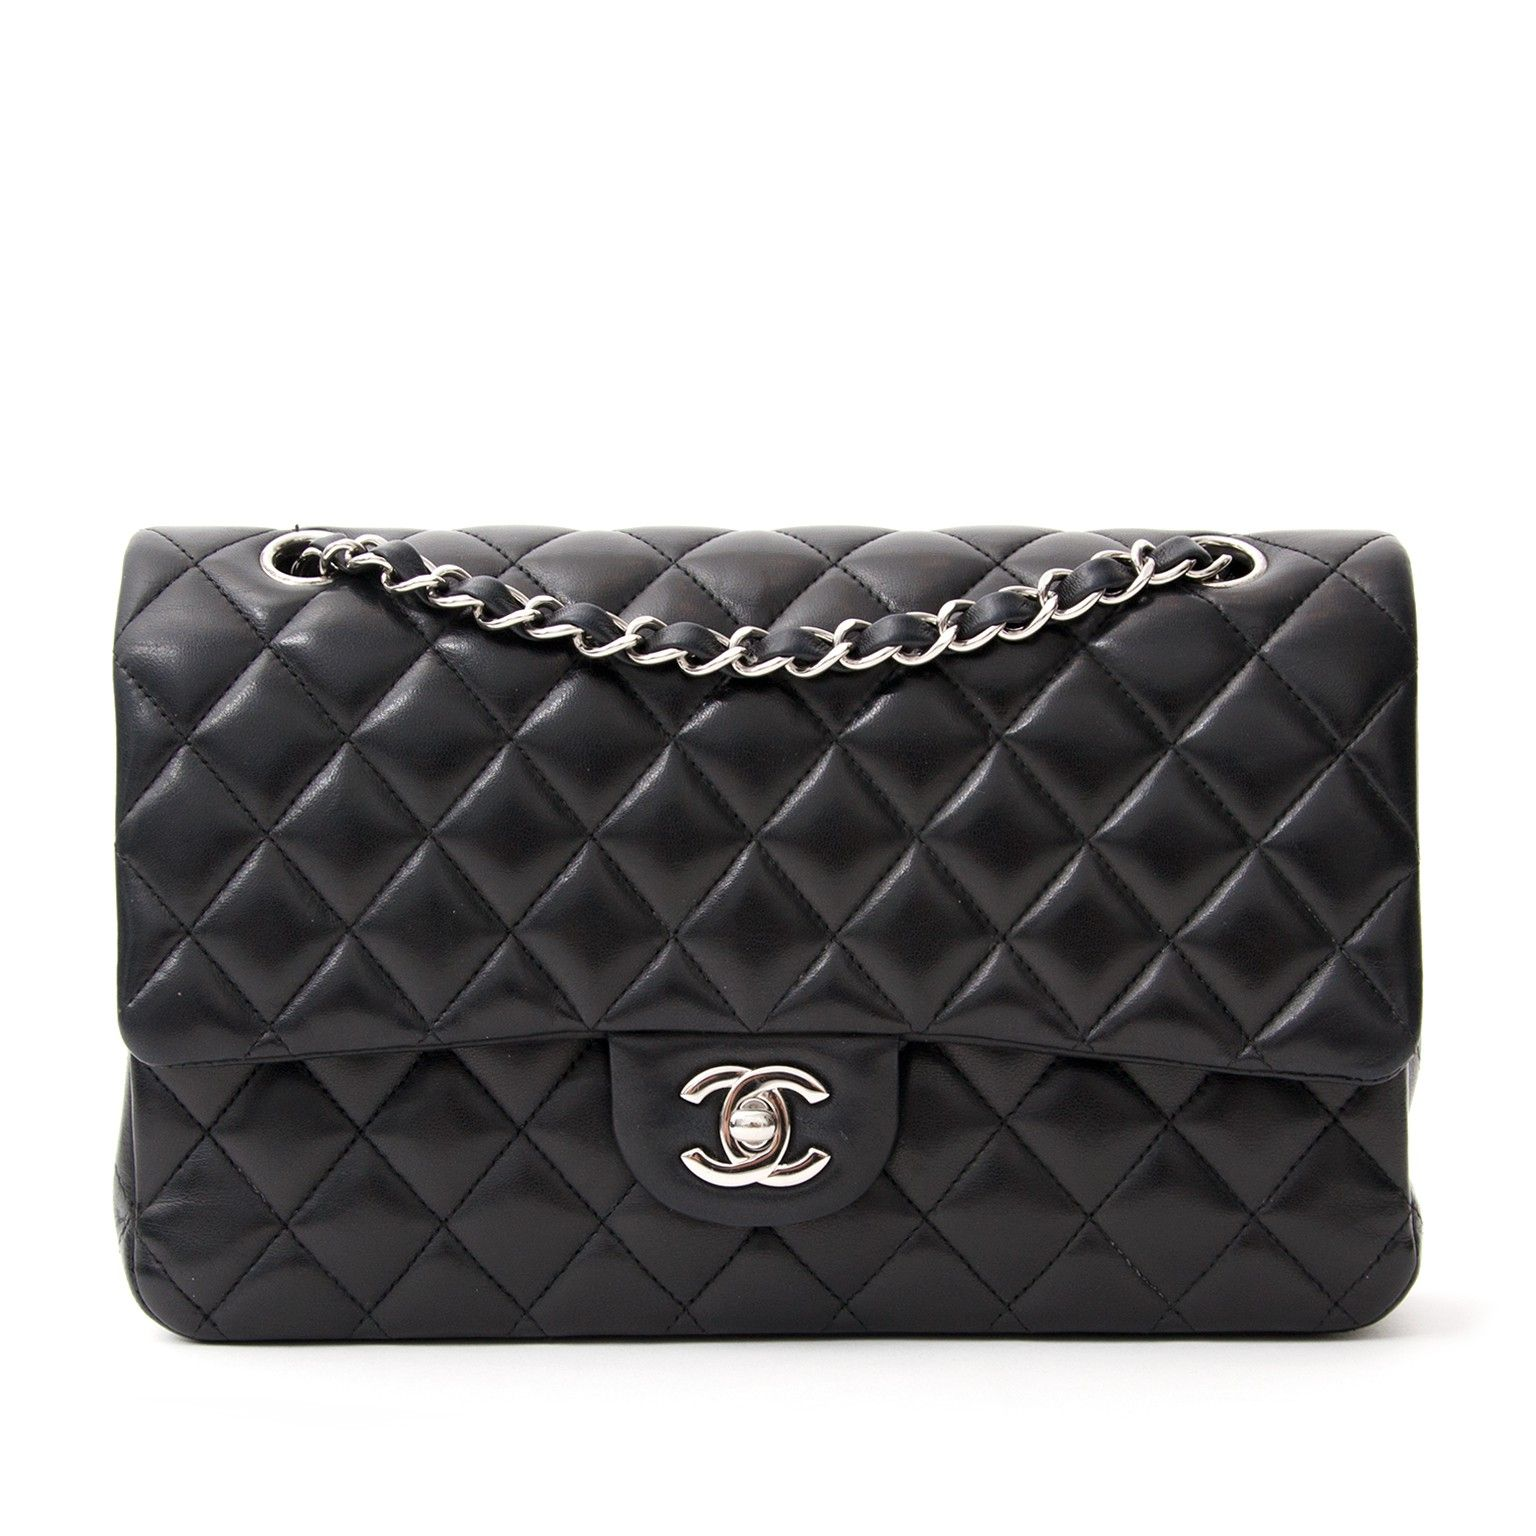 fcf19c9cc9e28 Tweedehands Chanel Classic Flap Medium Quilted Lambskin Silver Bag. Buy  this beautiful black classic Chanel